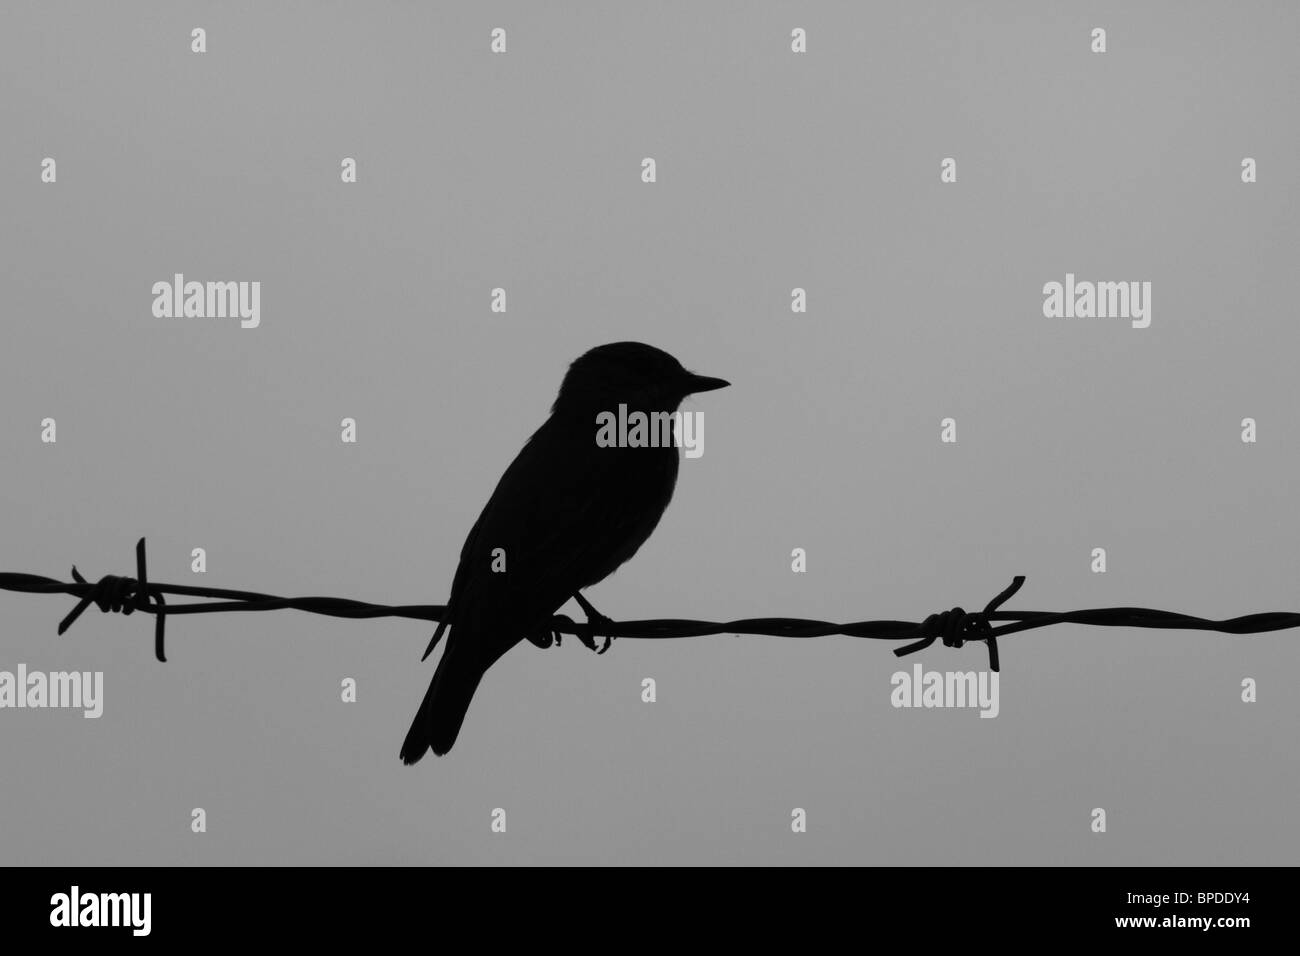 Silhouette of bird sitting on barbed wire Stock Photo: 31029128 - Alamy